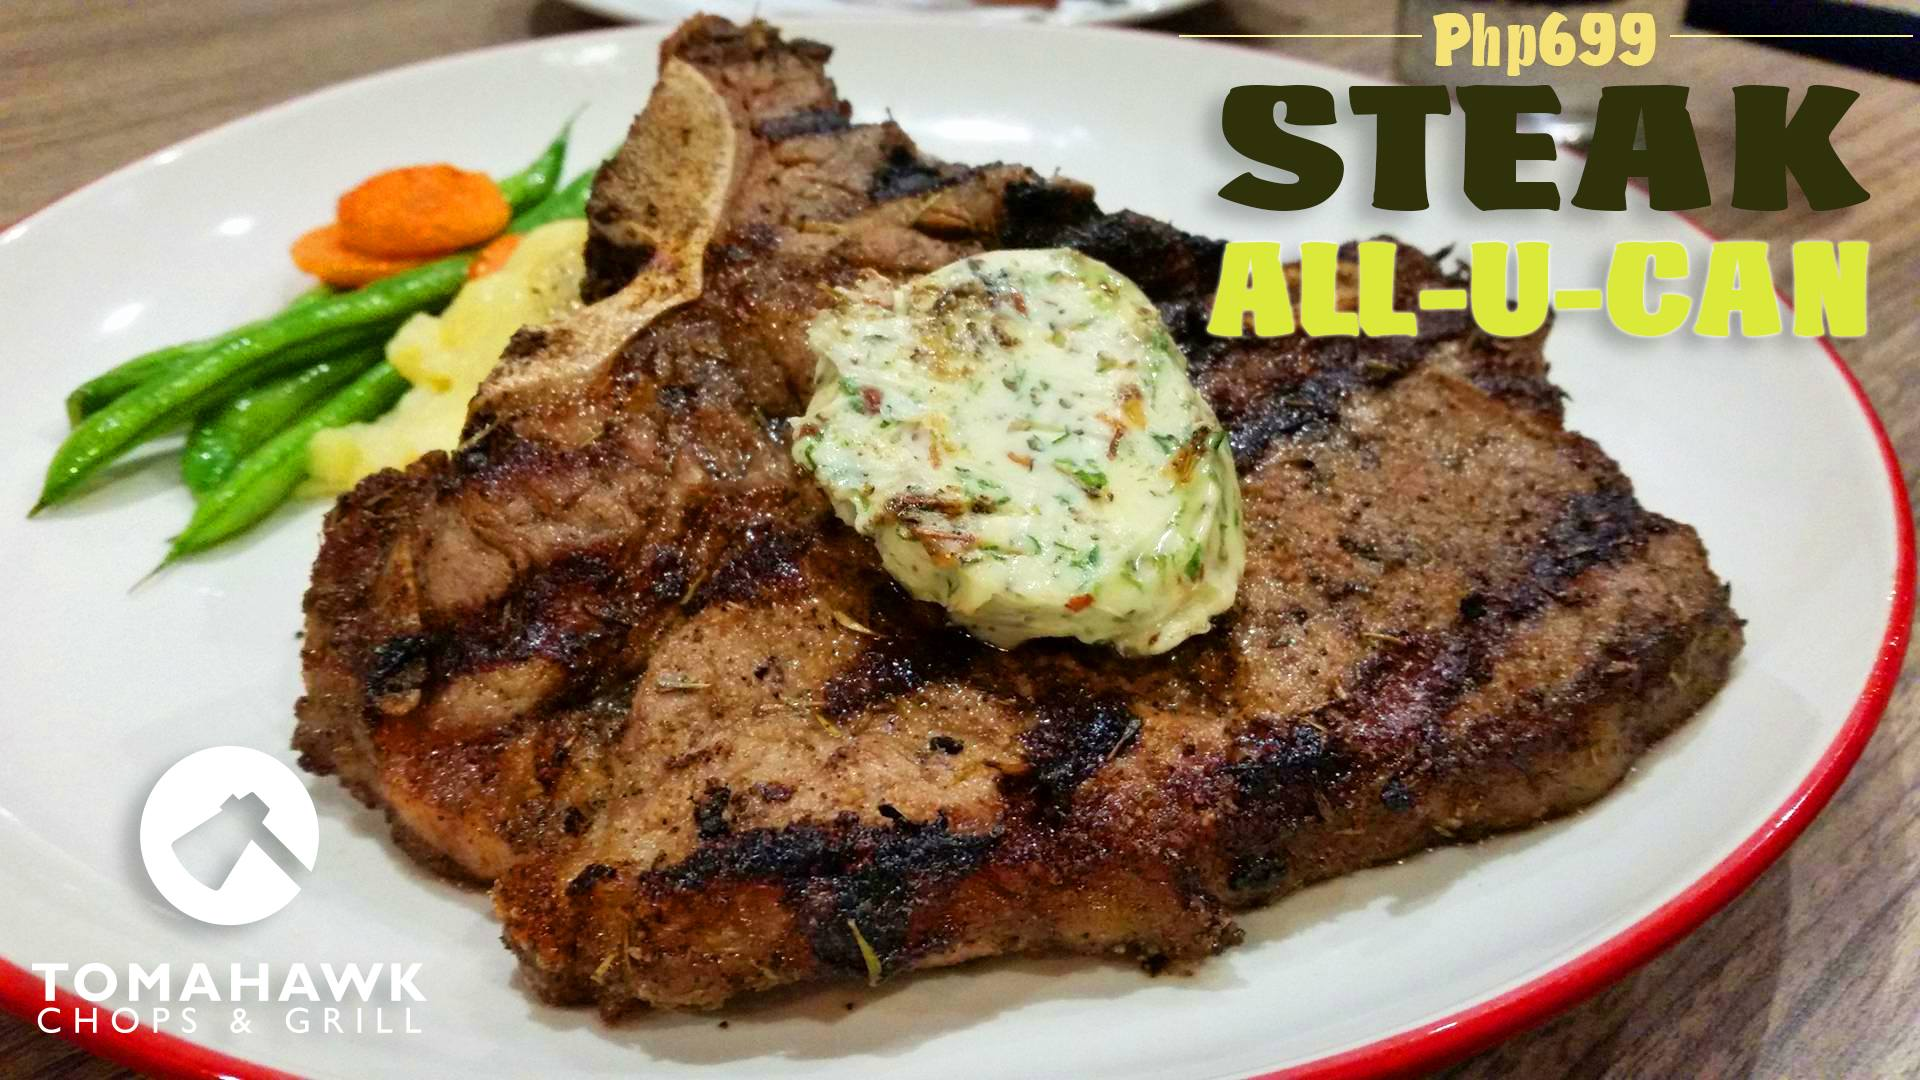 Steak All You Can At Tomahawk Chops and Grill